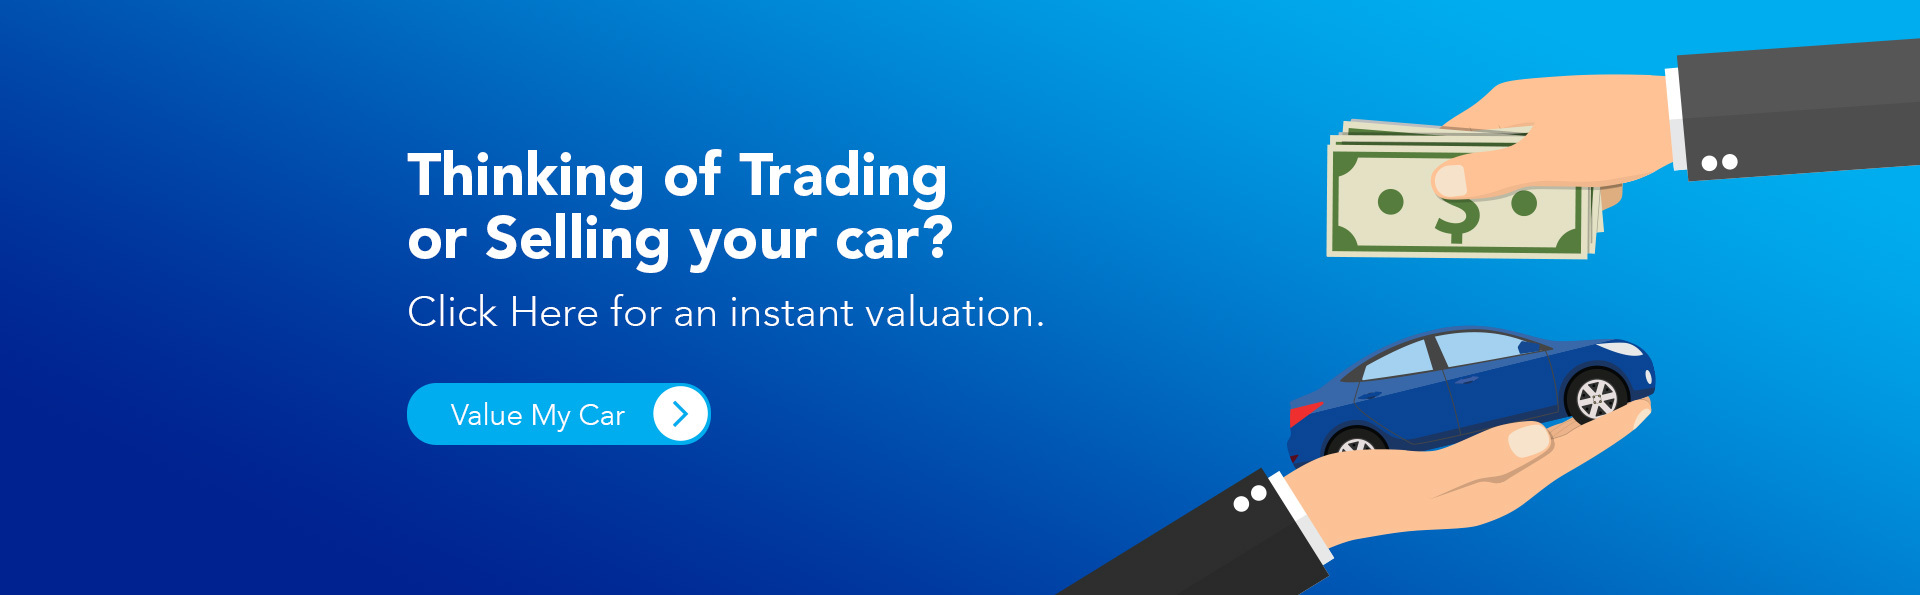 Melville Subaru Car Valuation